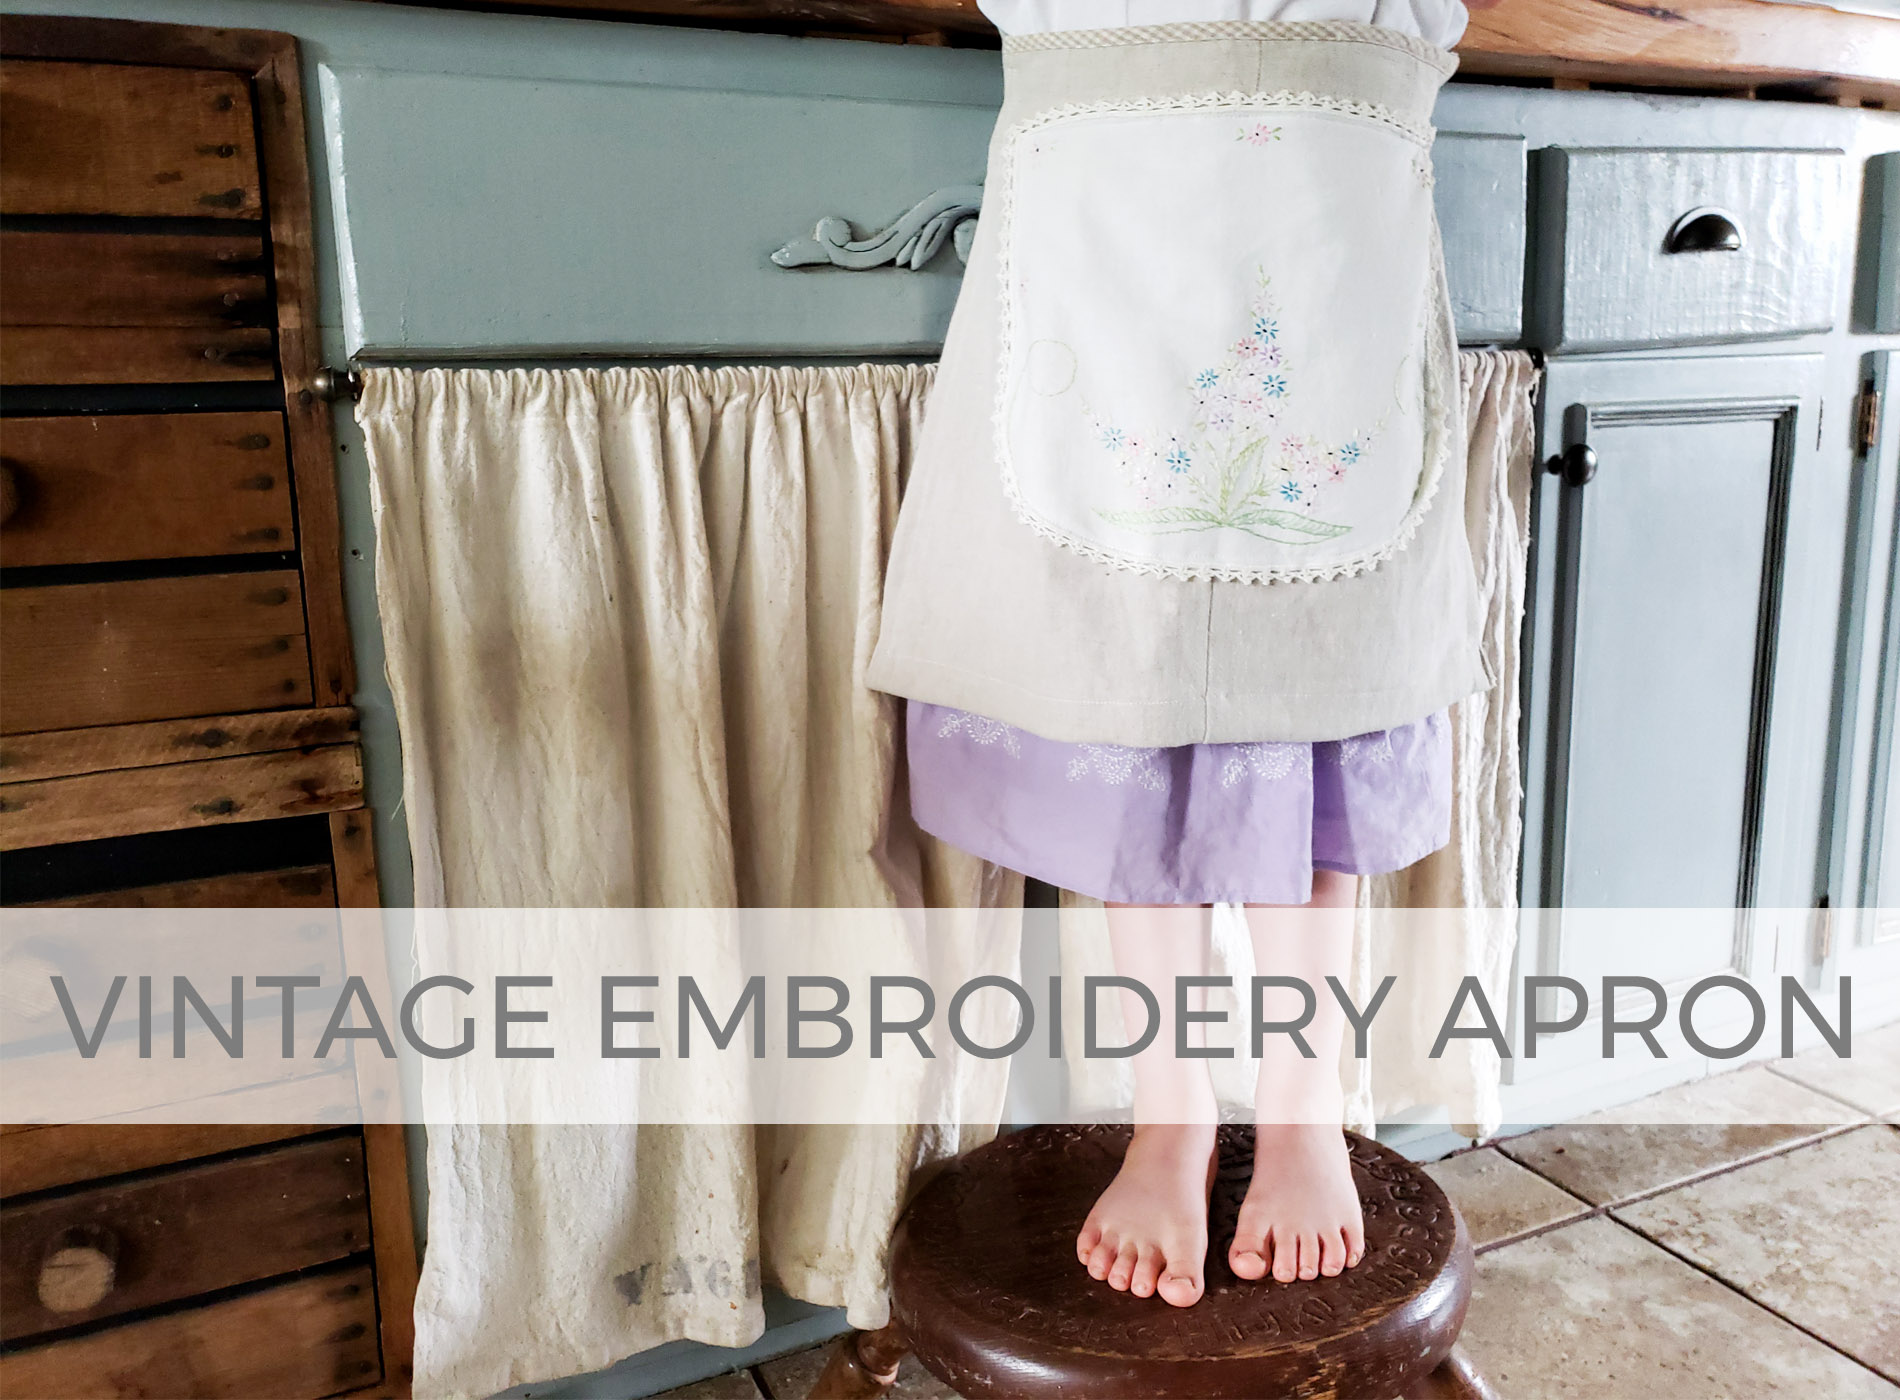 Create this cute kids apron with vintage embroidery | by Larissa of Prodigal Pieces | prodigalpieces.com #prodigalpieces